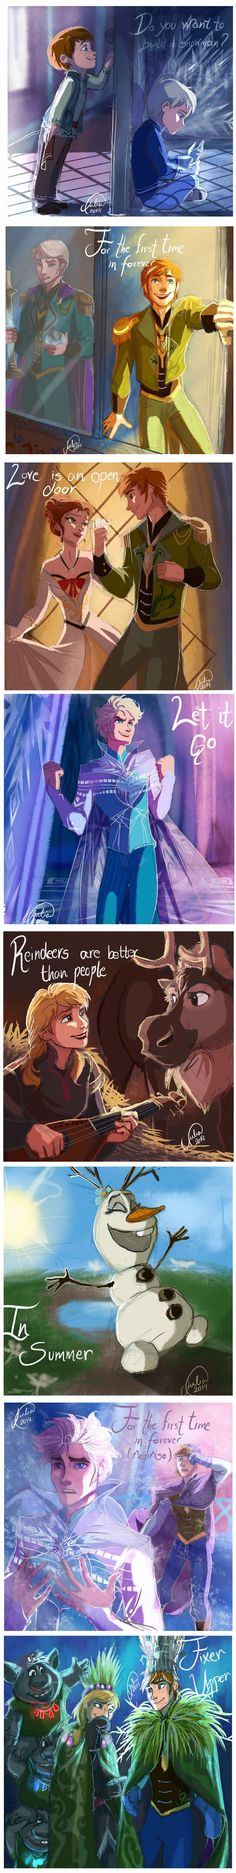 I have no idea why I love gender bent frozen so much, it's just beautifully adorable!!!!!!!!!